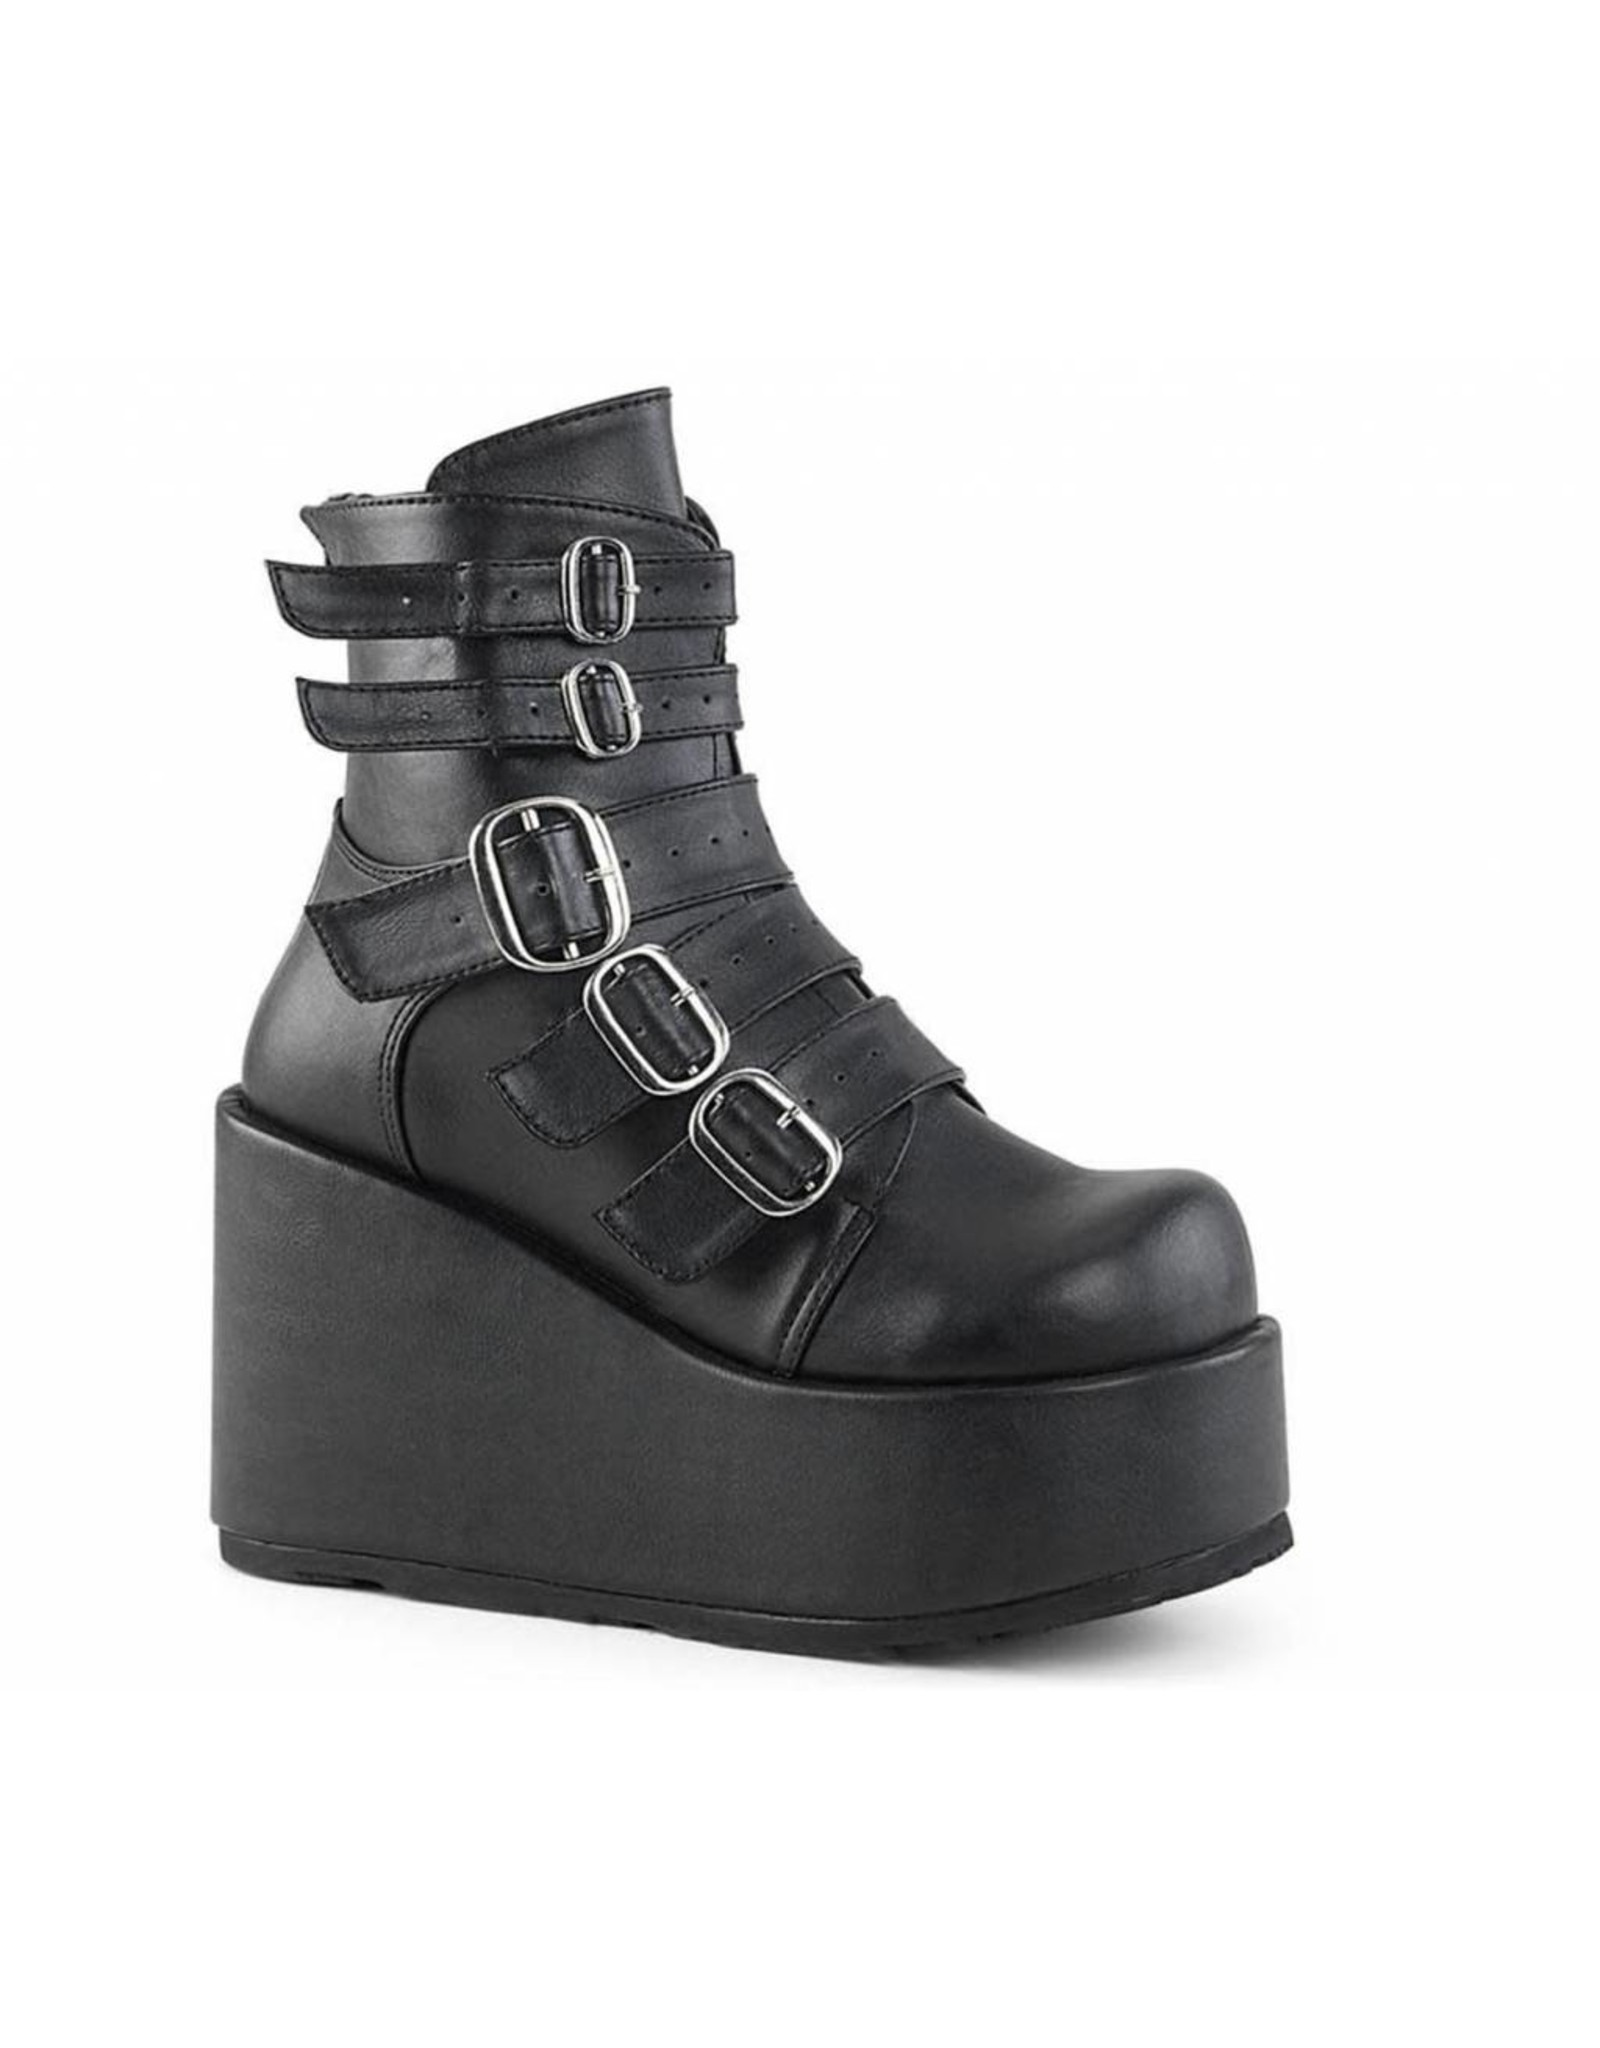 """DEMONIA CONCORD-57 4 1/4"""" PF Ankle Boot w/ Multi Buckle Straps, Back Zip D19VBS"""